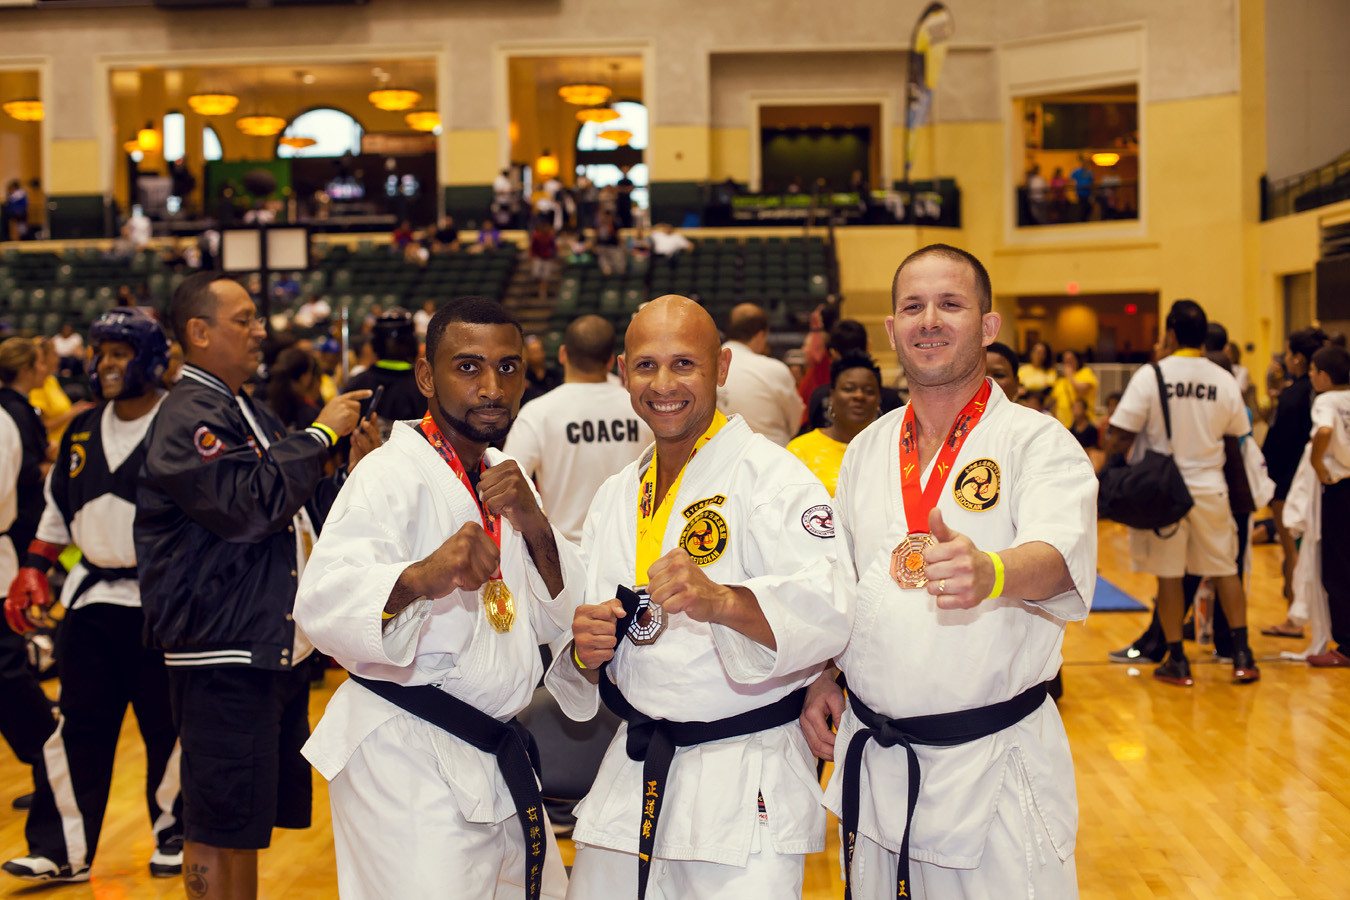 international-martial-arts-festival-nationals-58